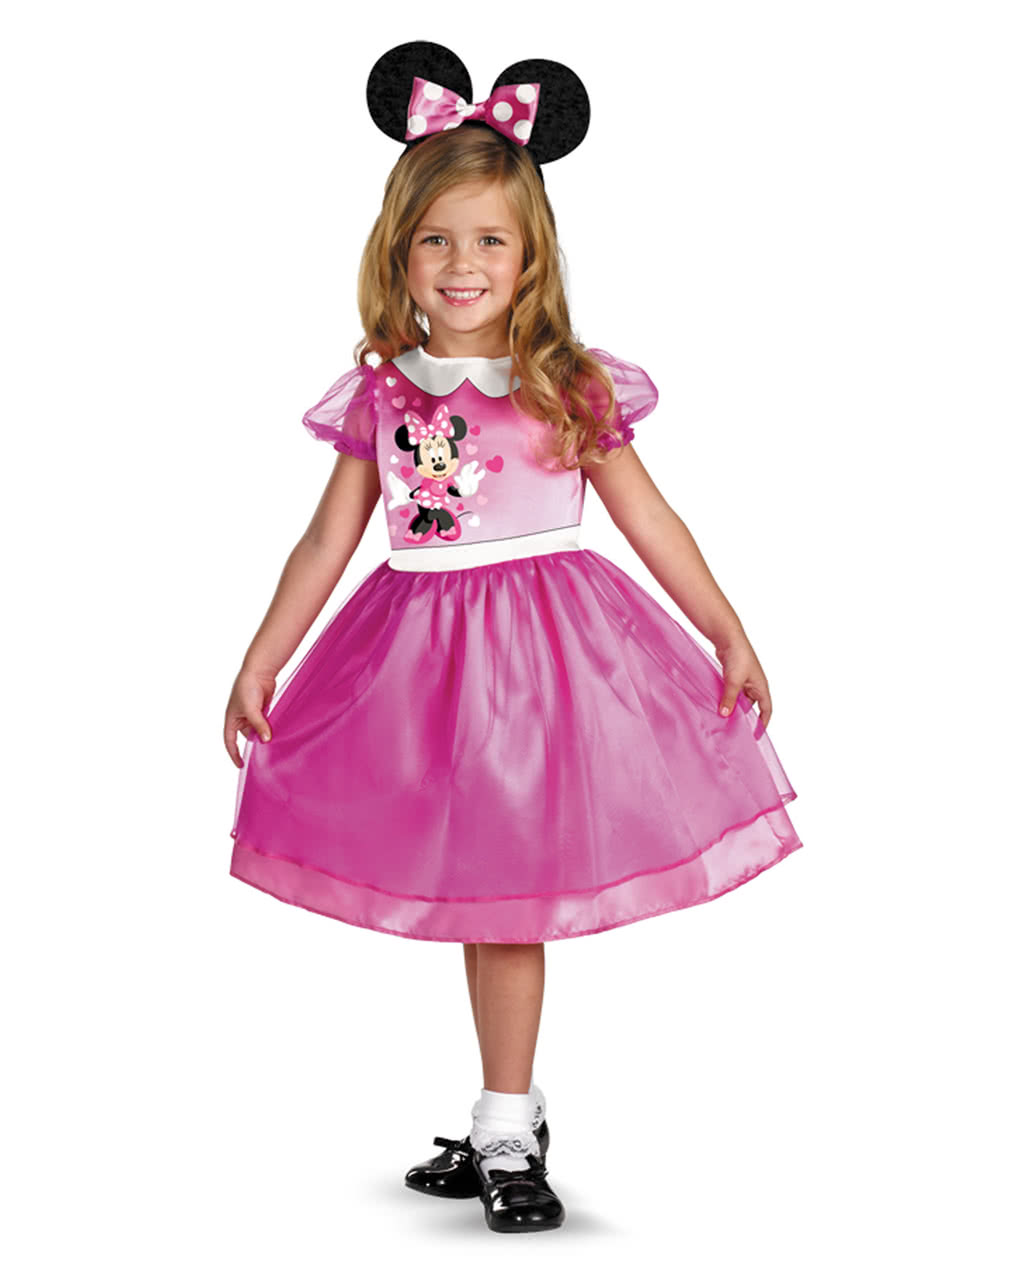 Minnie Mouse Costume Pink Toddlers Disney Childrens Costumes